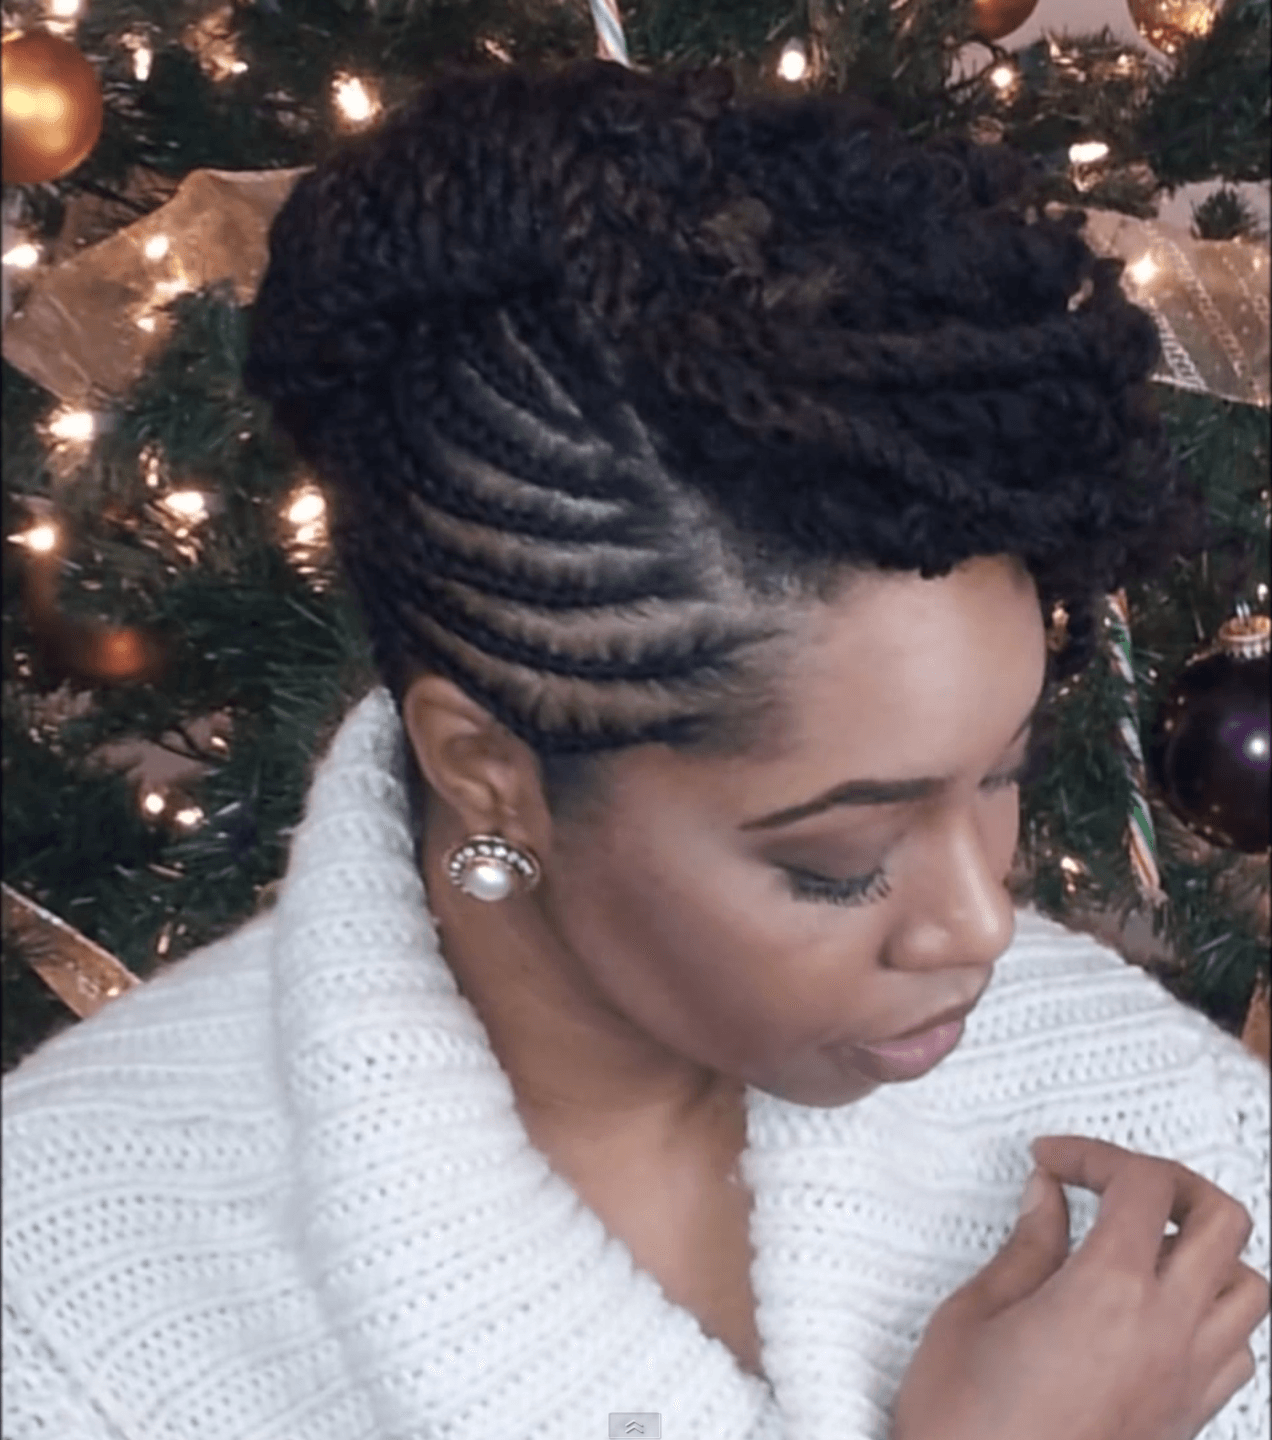 Awe Inspiring 5 Fun Natural Hair Styles To Bring In The New Year Fun Holiday Hairstyle Inspiration Daily Dogsangcom